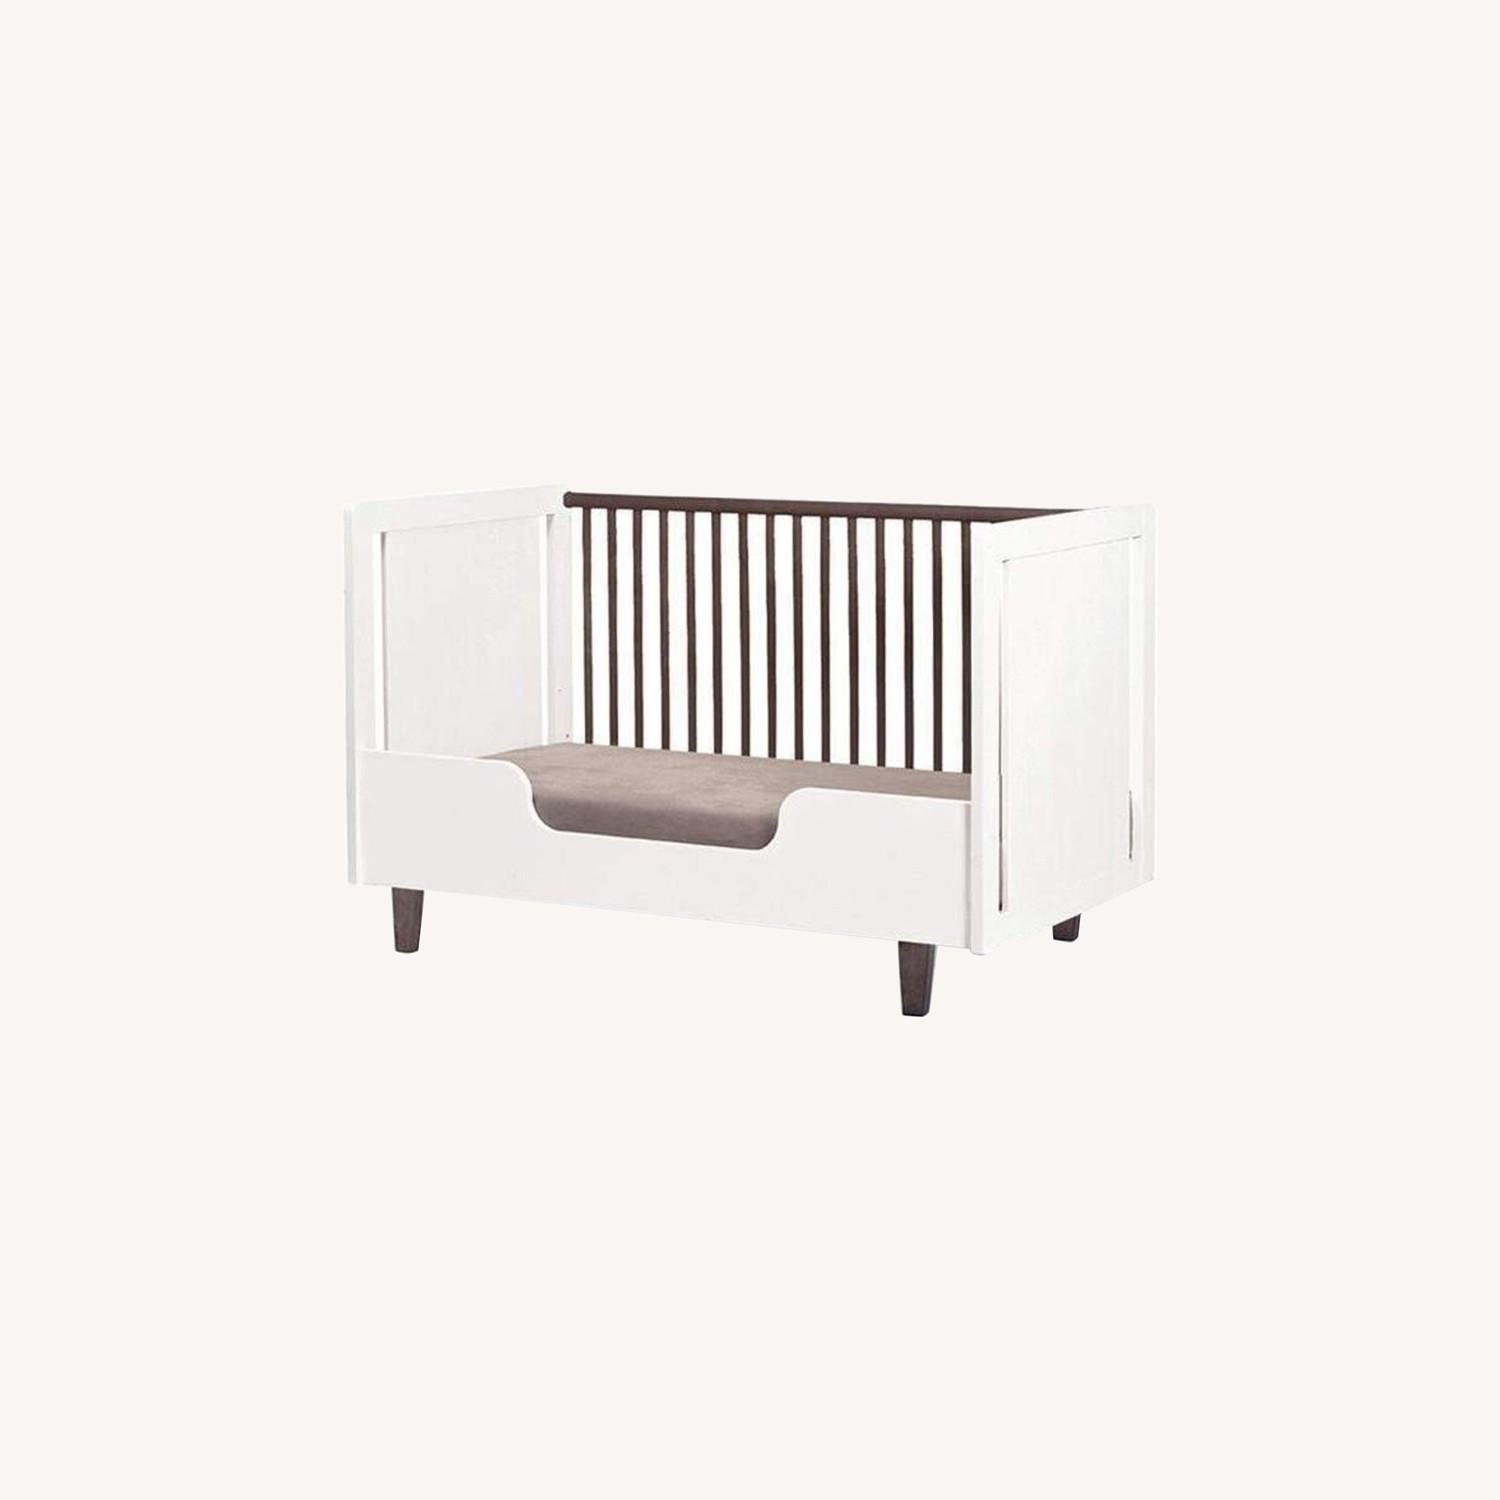 Oeuf Rhea Crib with Toddler Conversion - image-0